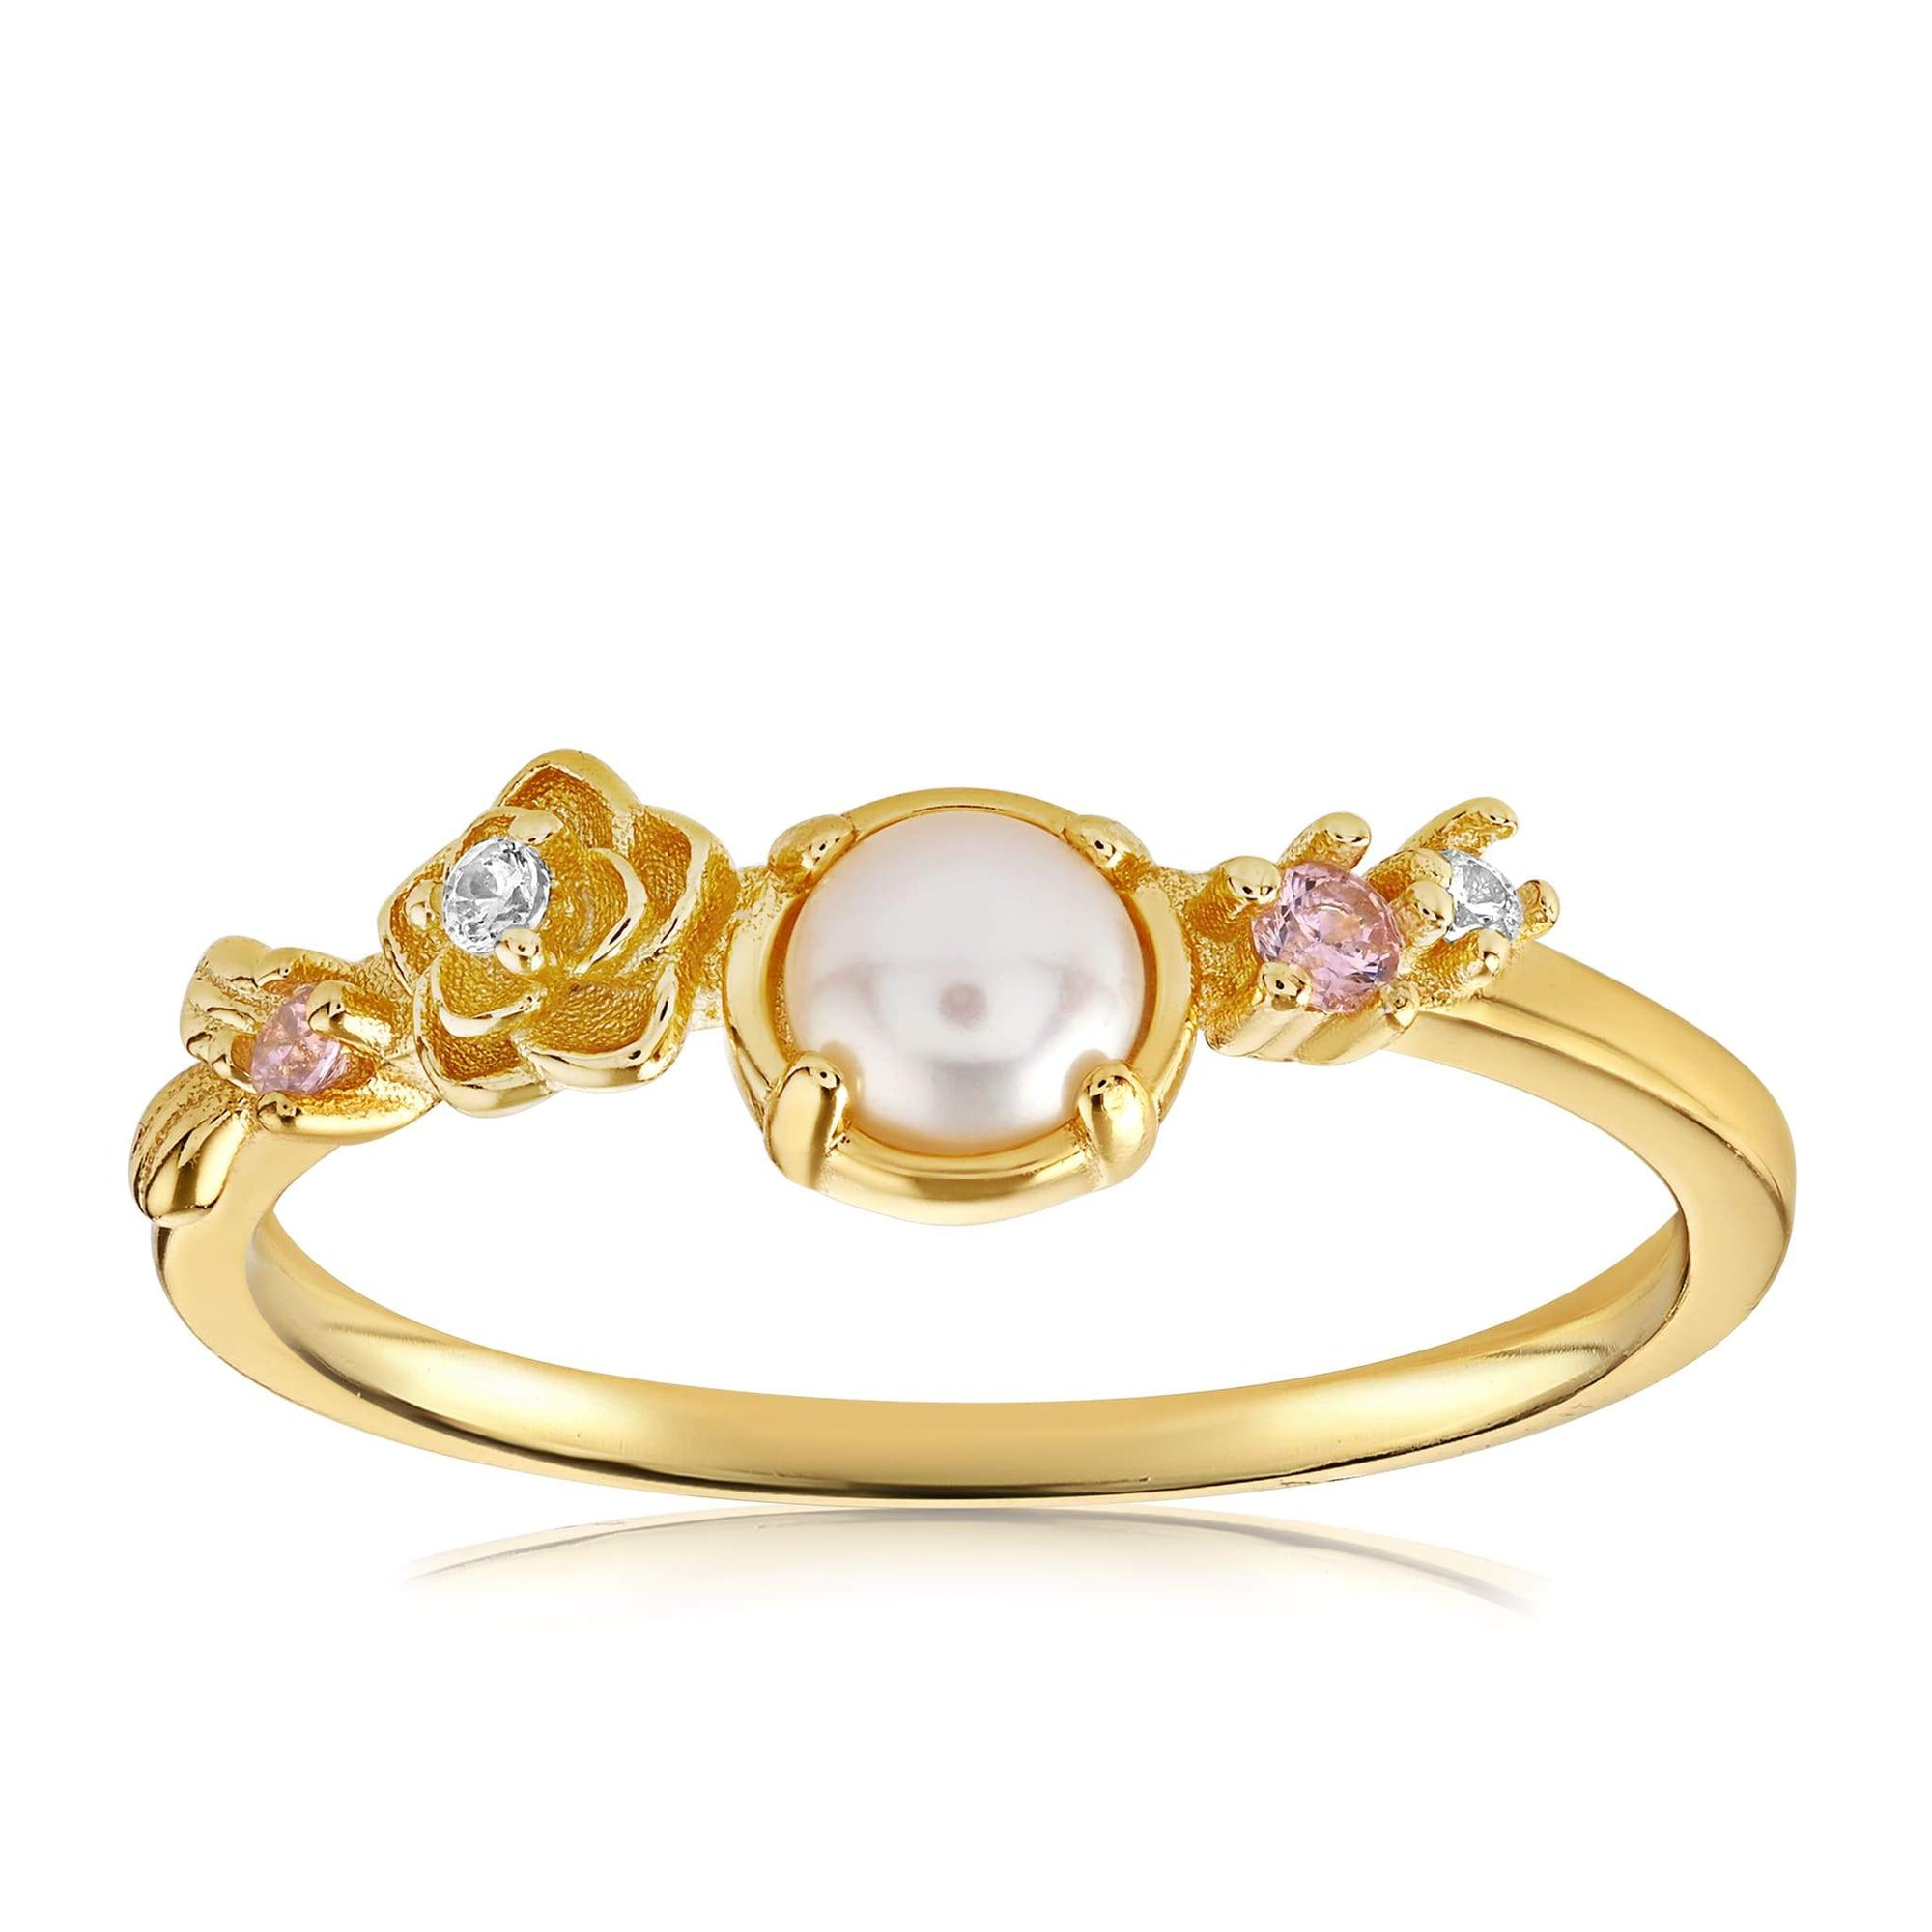 Grace Pearl Ring - Front View Facing Up - 18K Yellow Gold Vermeil